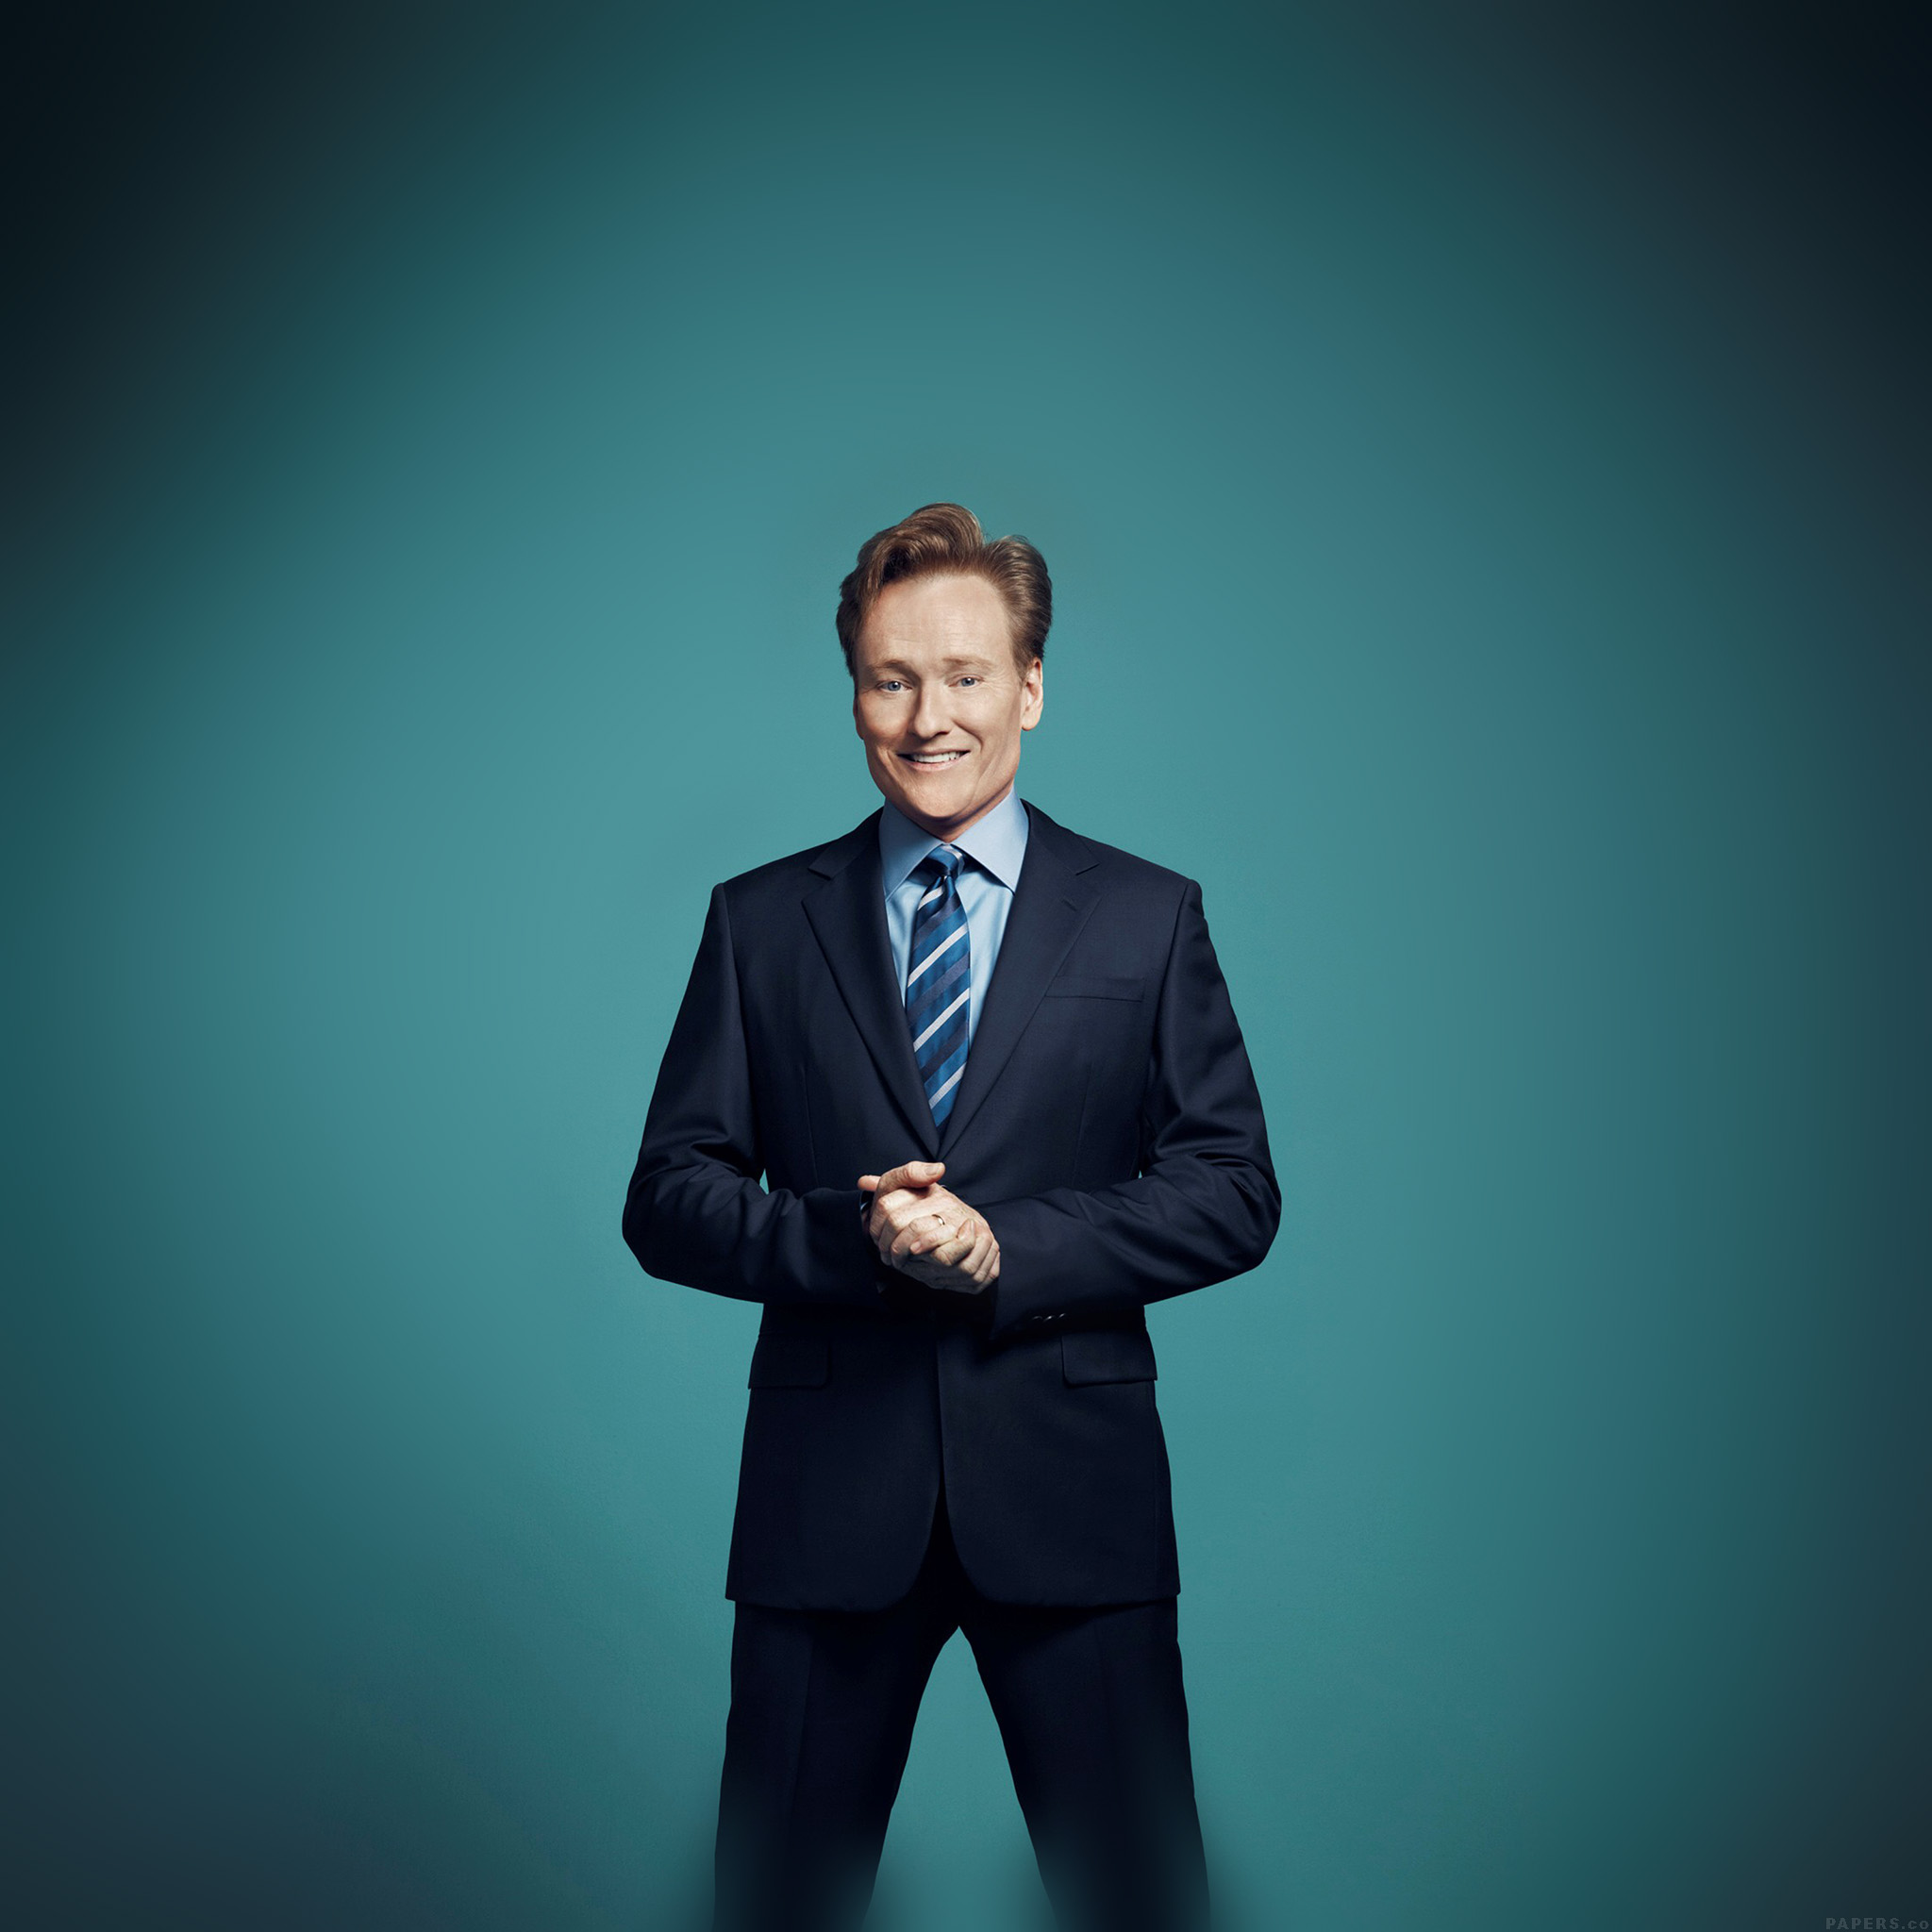 Hd Car Wallpaper For Iphone 6 Hc98 Conan O Brien Host Sexy Celebrity Papers Co